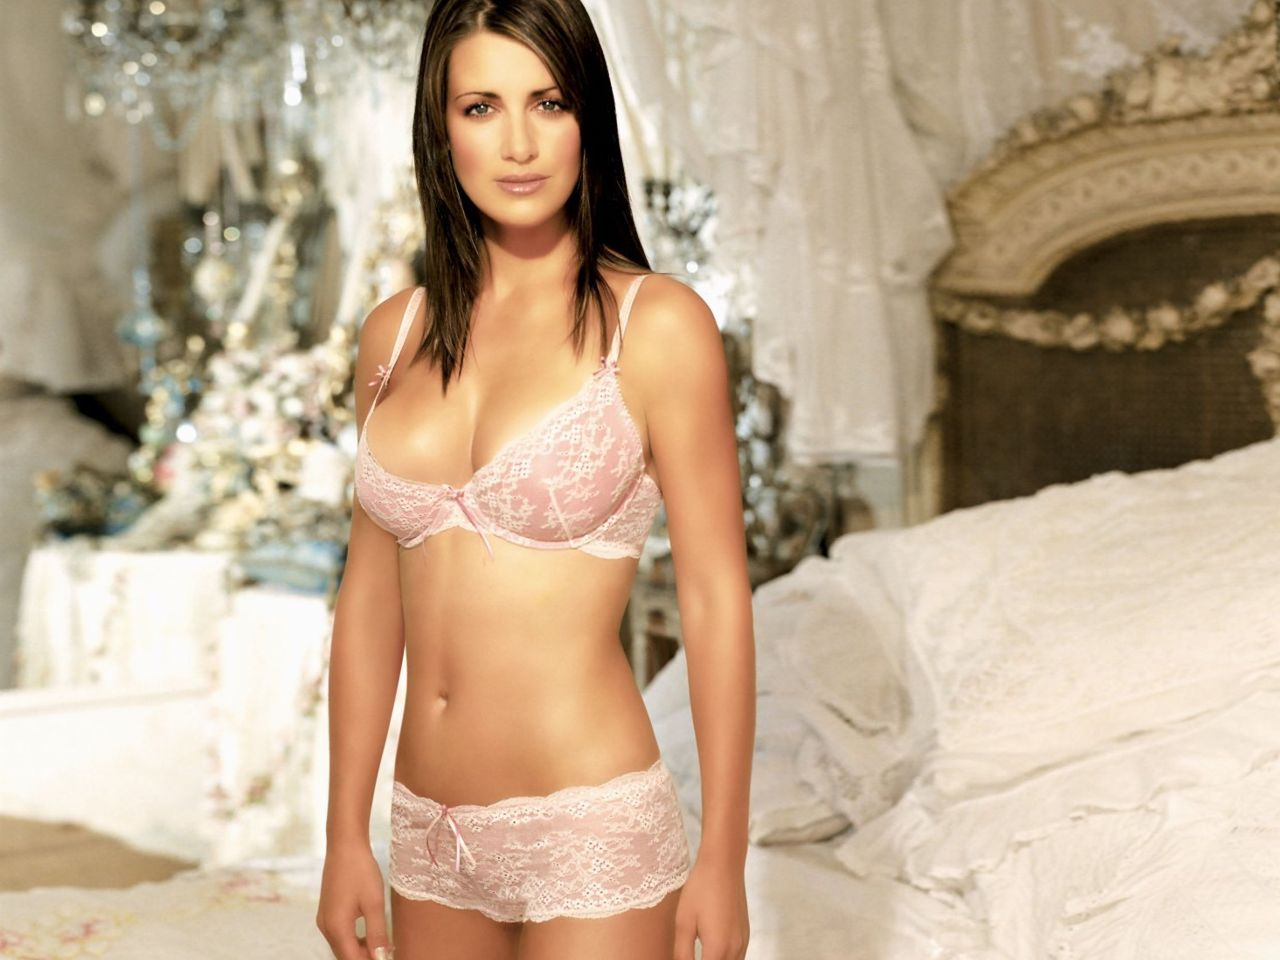 Lonely Girl Hd Wallpapers For Mobile Kirsty Gallacher Desktop Backgrounds Desktop Background